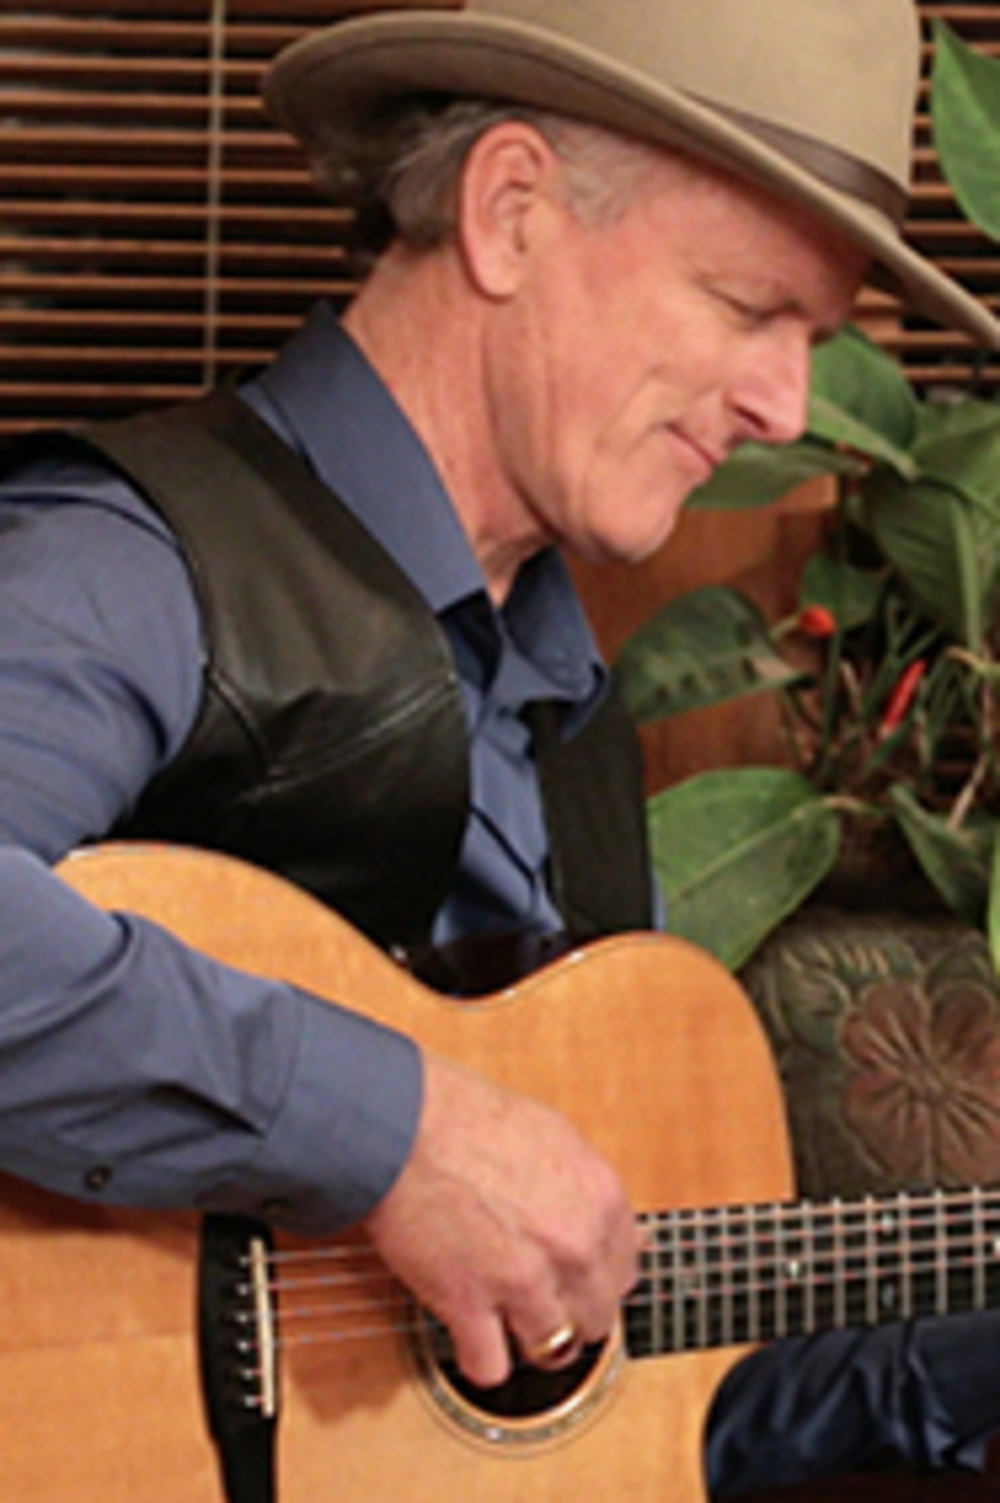 10/6/2018 - Intermediate Fingerstyle Blues with Mark Hanson